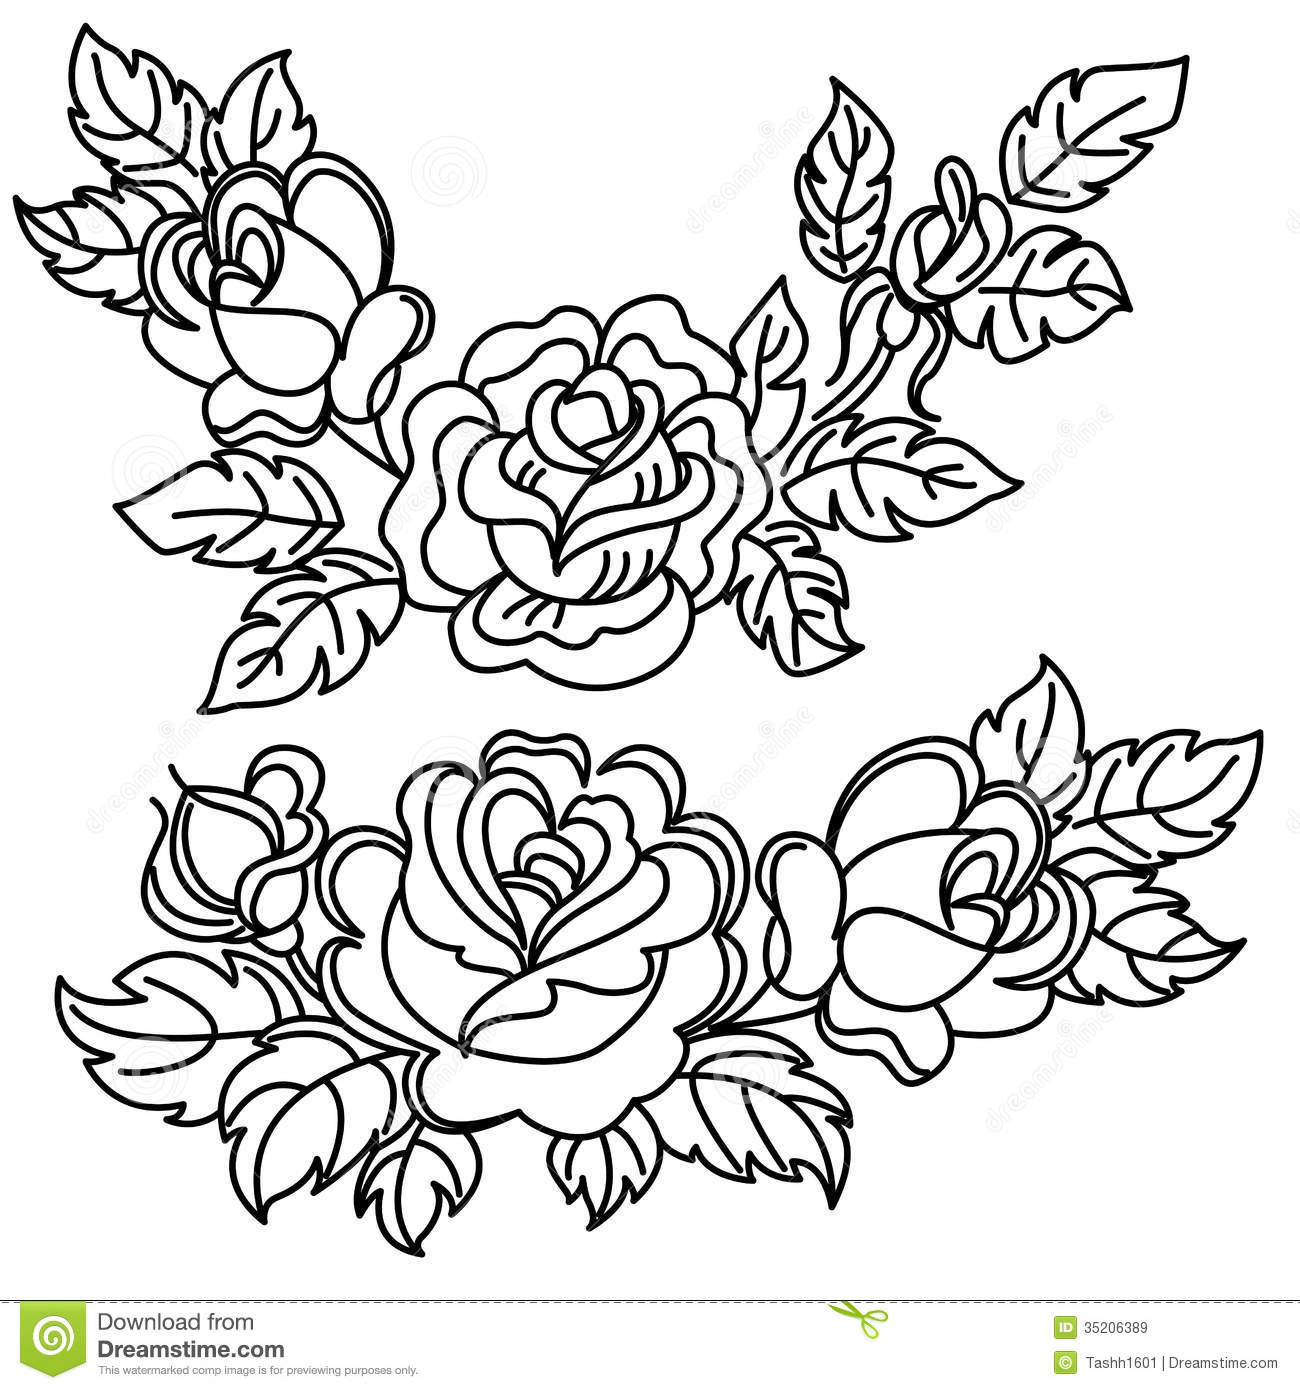 Rose black and white drawing at getdrawings free for personal 1300x1390 black and white flowers pictures mightylinksfo